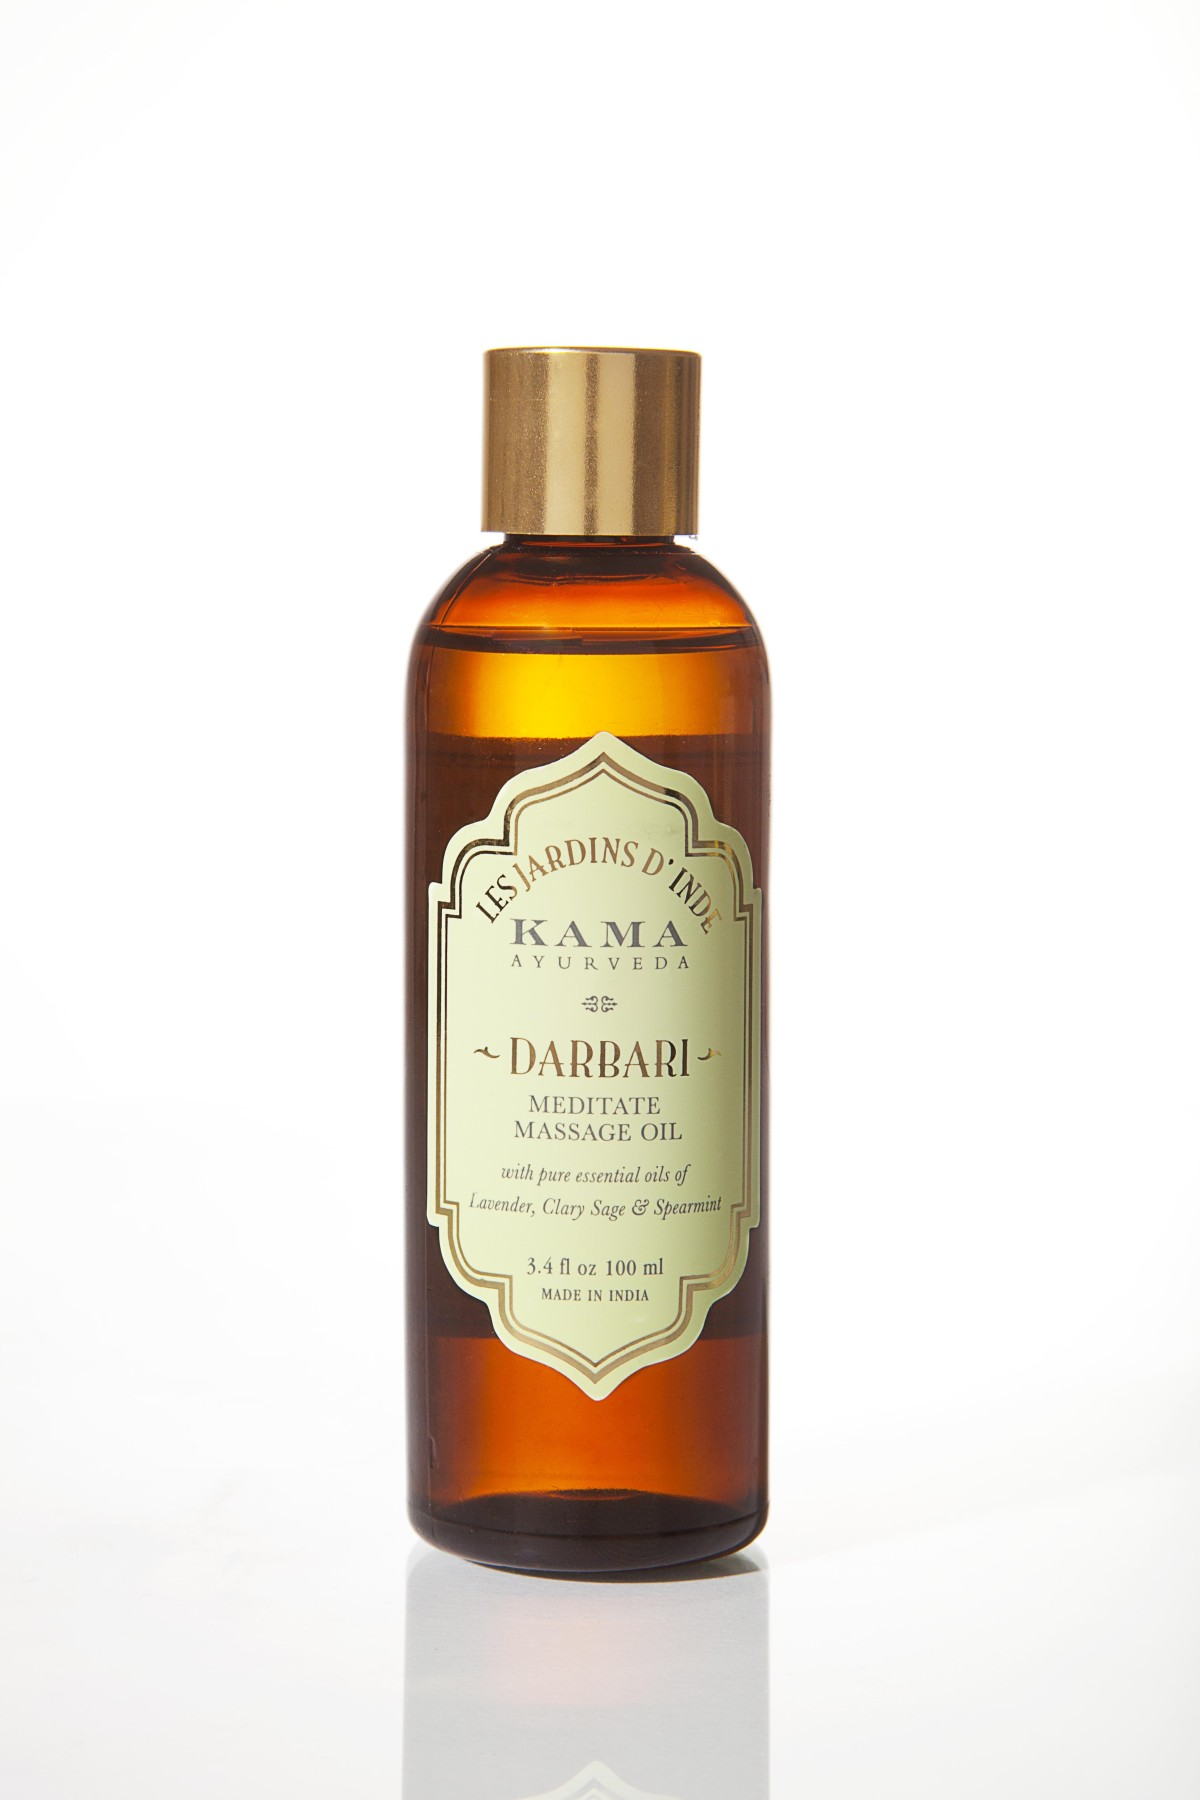 Darbari Meditate Massage Oil